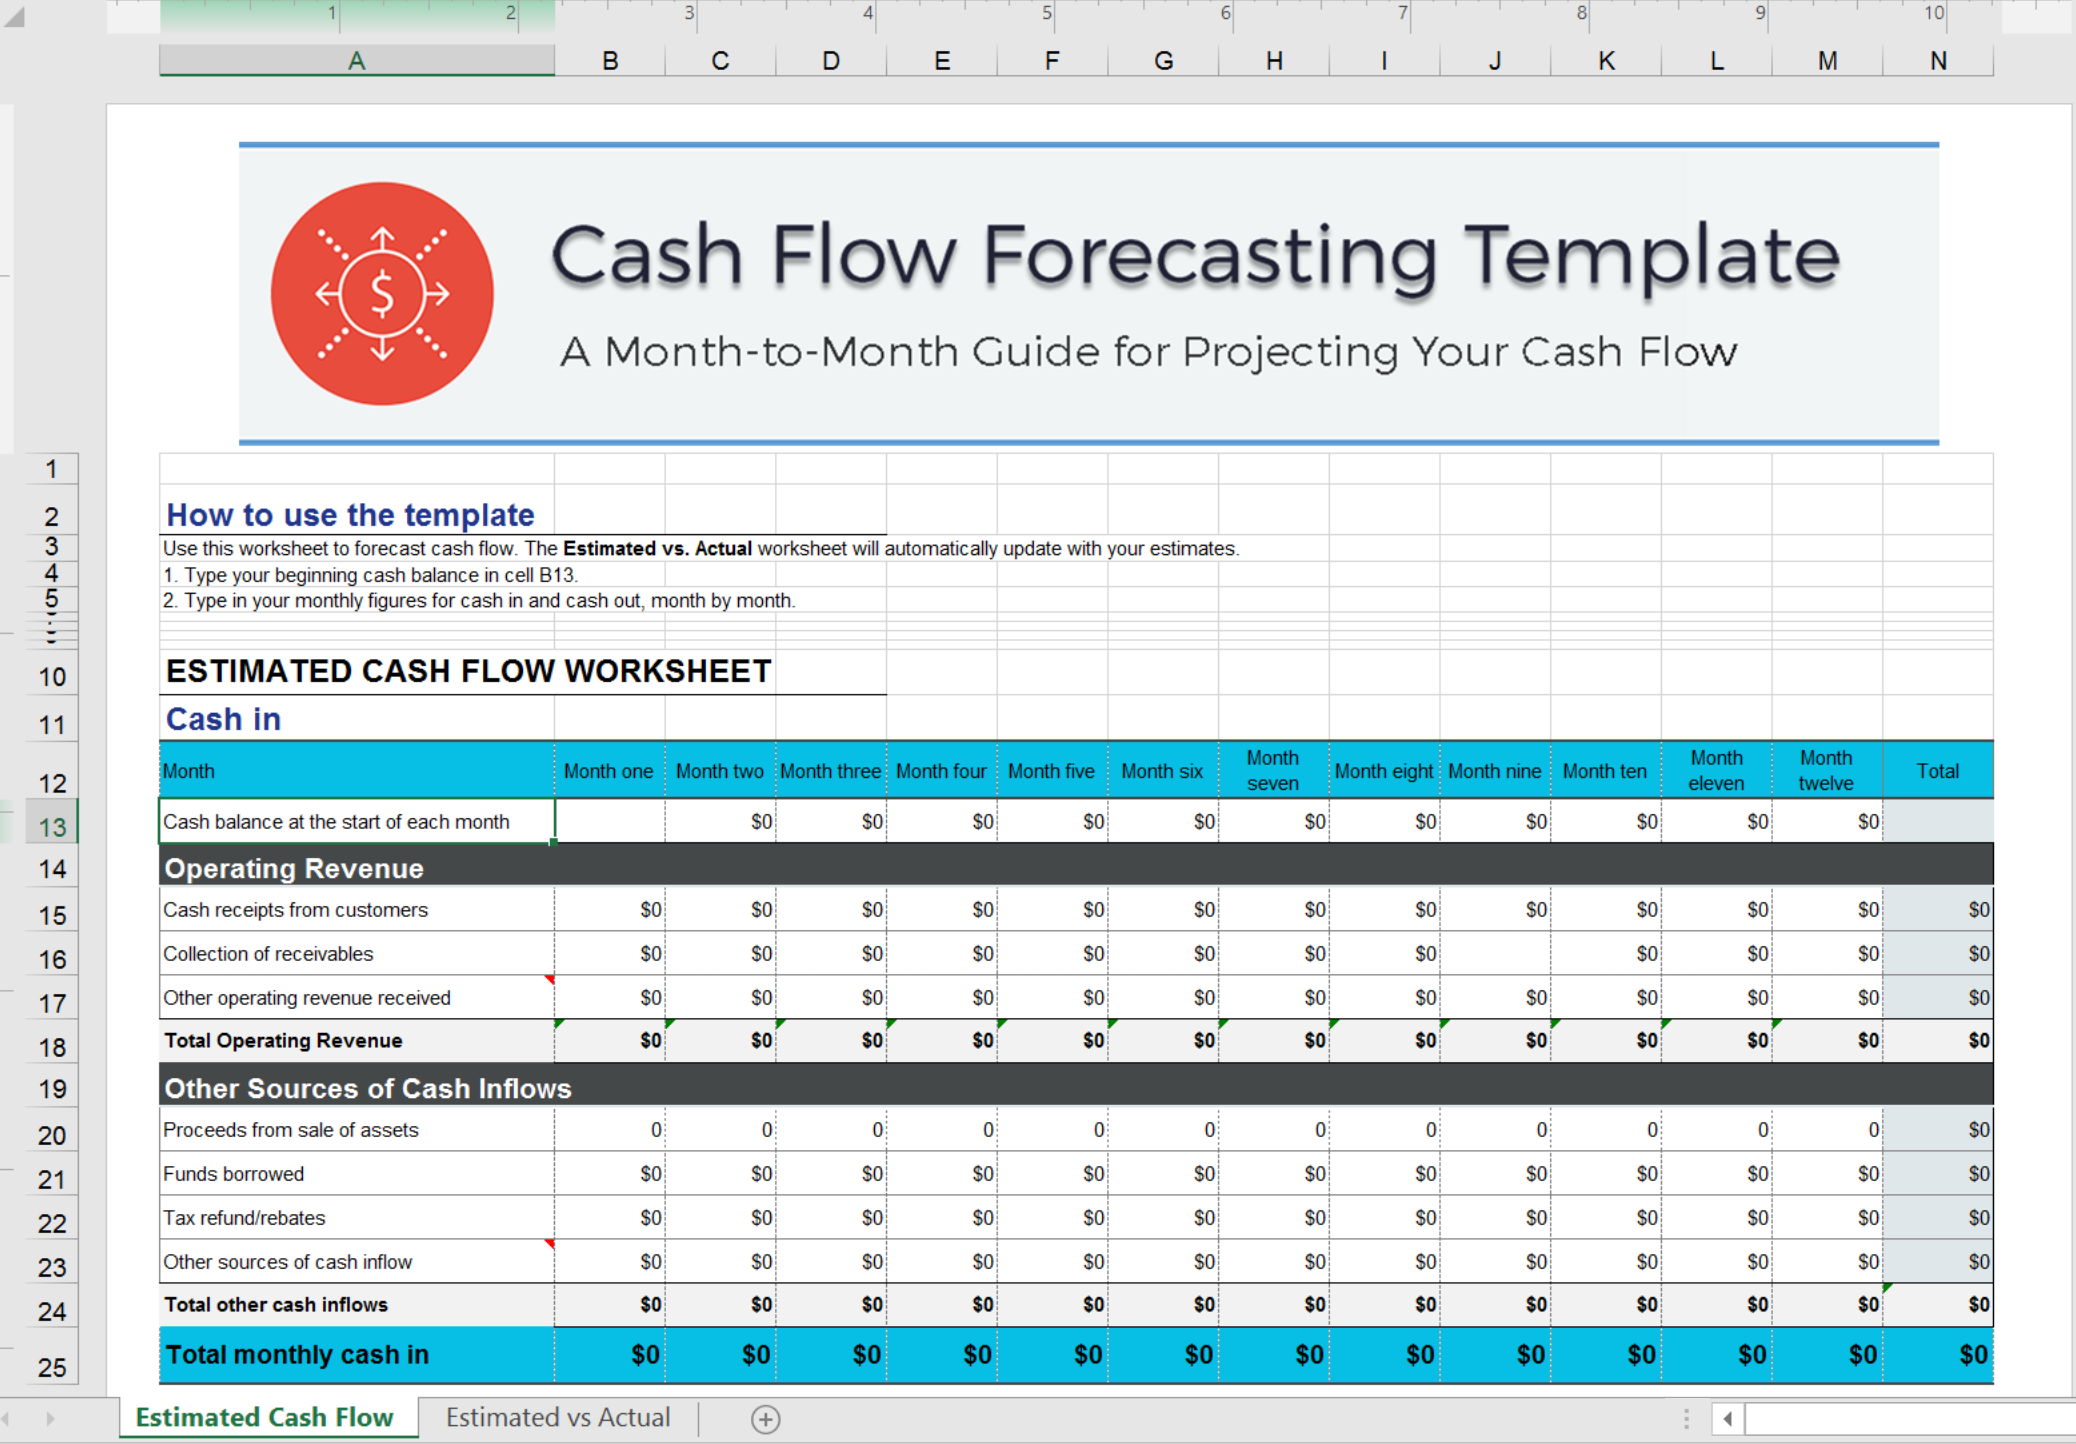 cash flow excel template forecast your cash flow. Black Bedroom Furniture Sets. Home Design Ideas